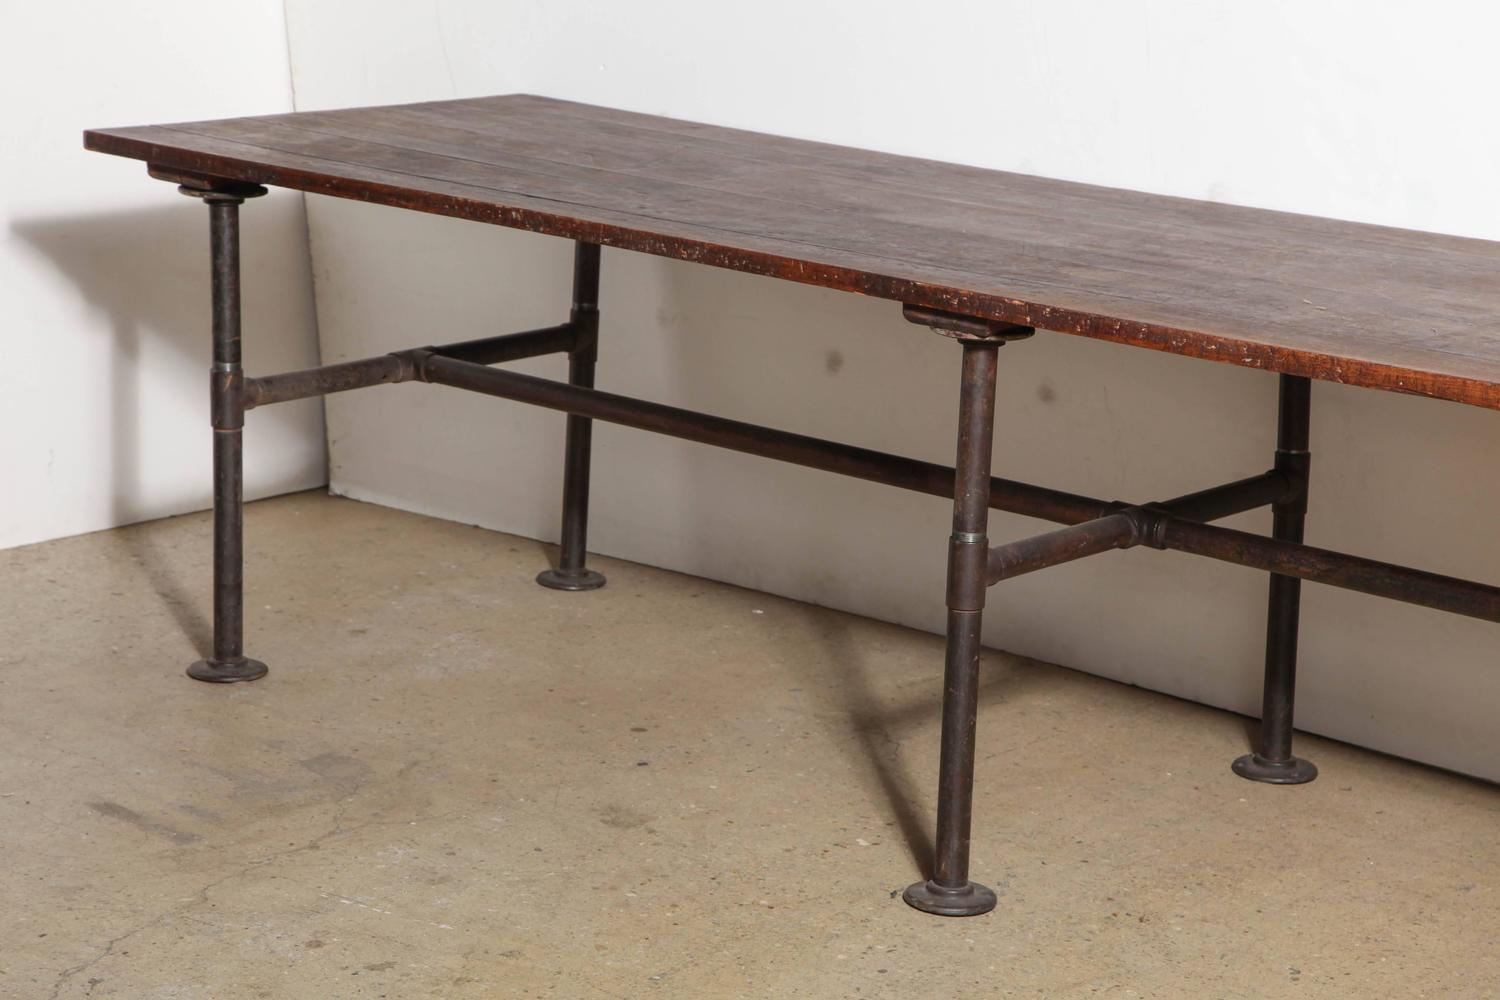 19th century 10 39 foot long solid black walnut industrial for 10ft dining table